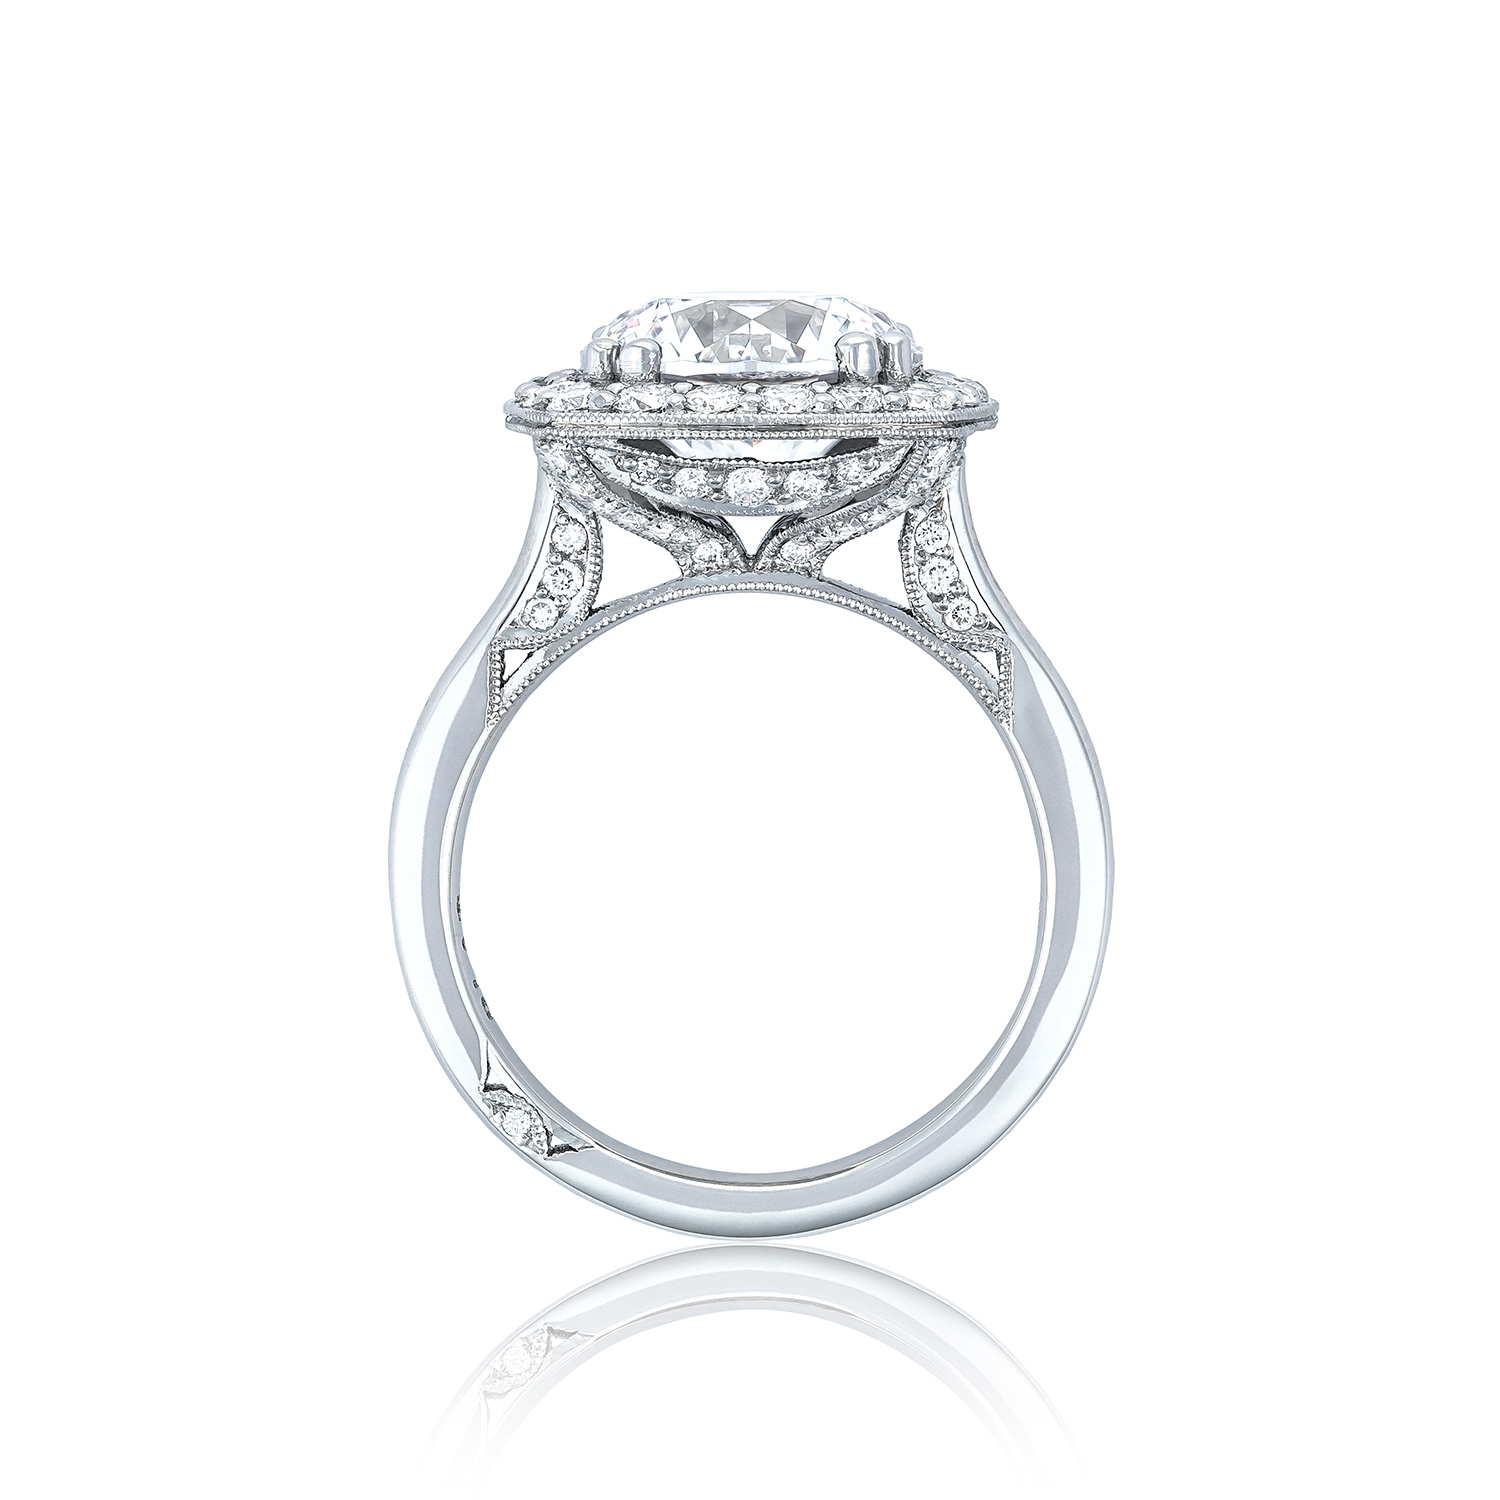 Tacori royalt ht2651cu10 bloom diamond engagement ring for Wedding rings tacori